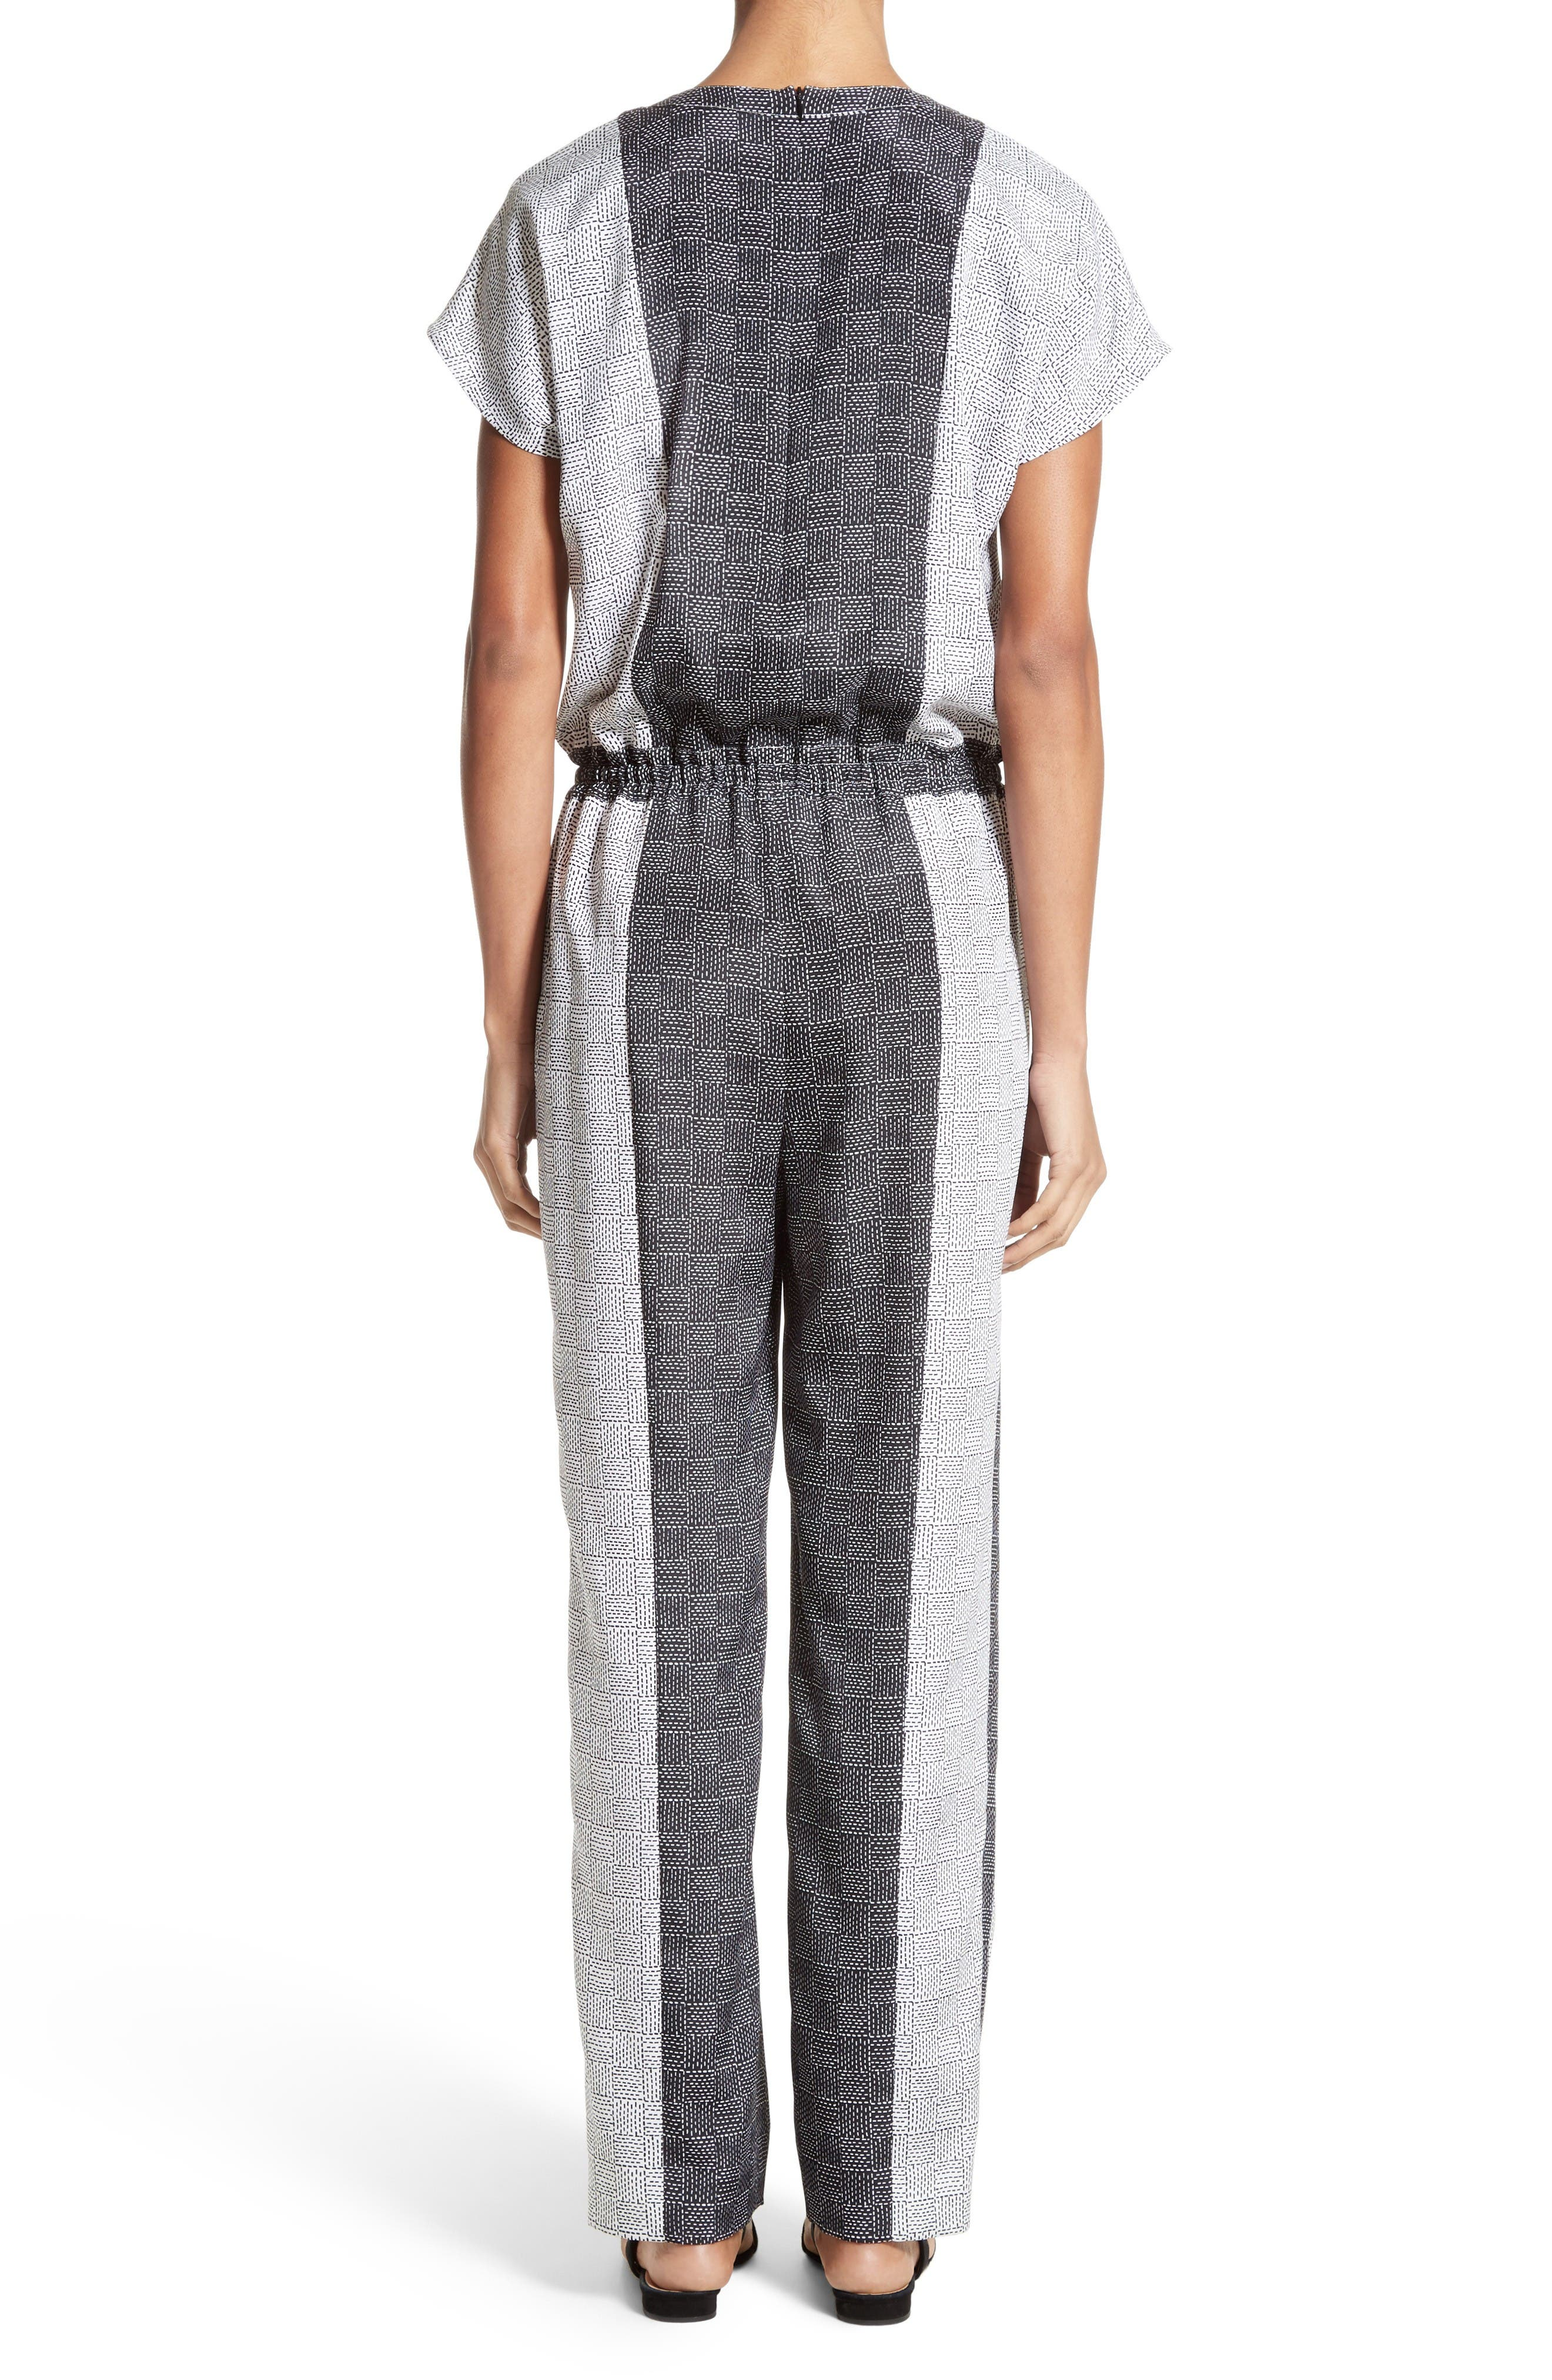 Stitch Print Stretch Silk Jumpsuit,                             Alternate thumbnail 2, color,                             Bianco/ Caviar